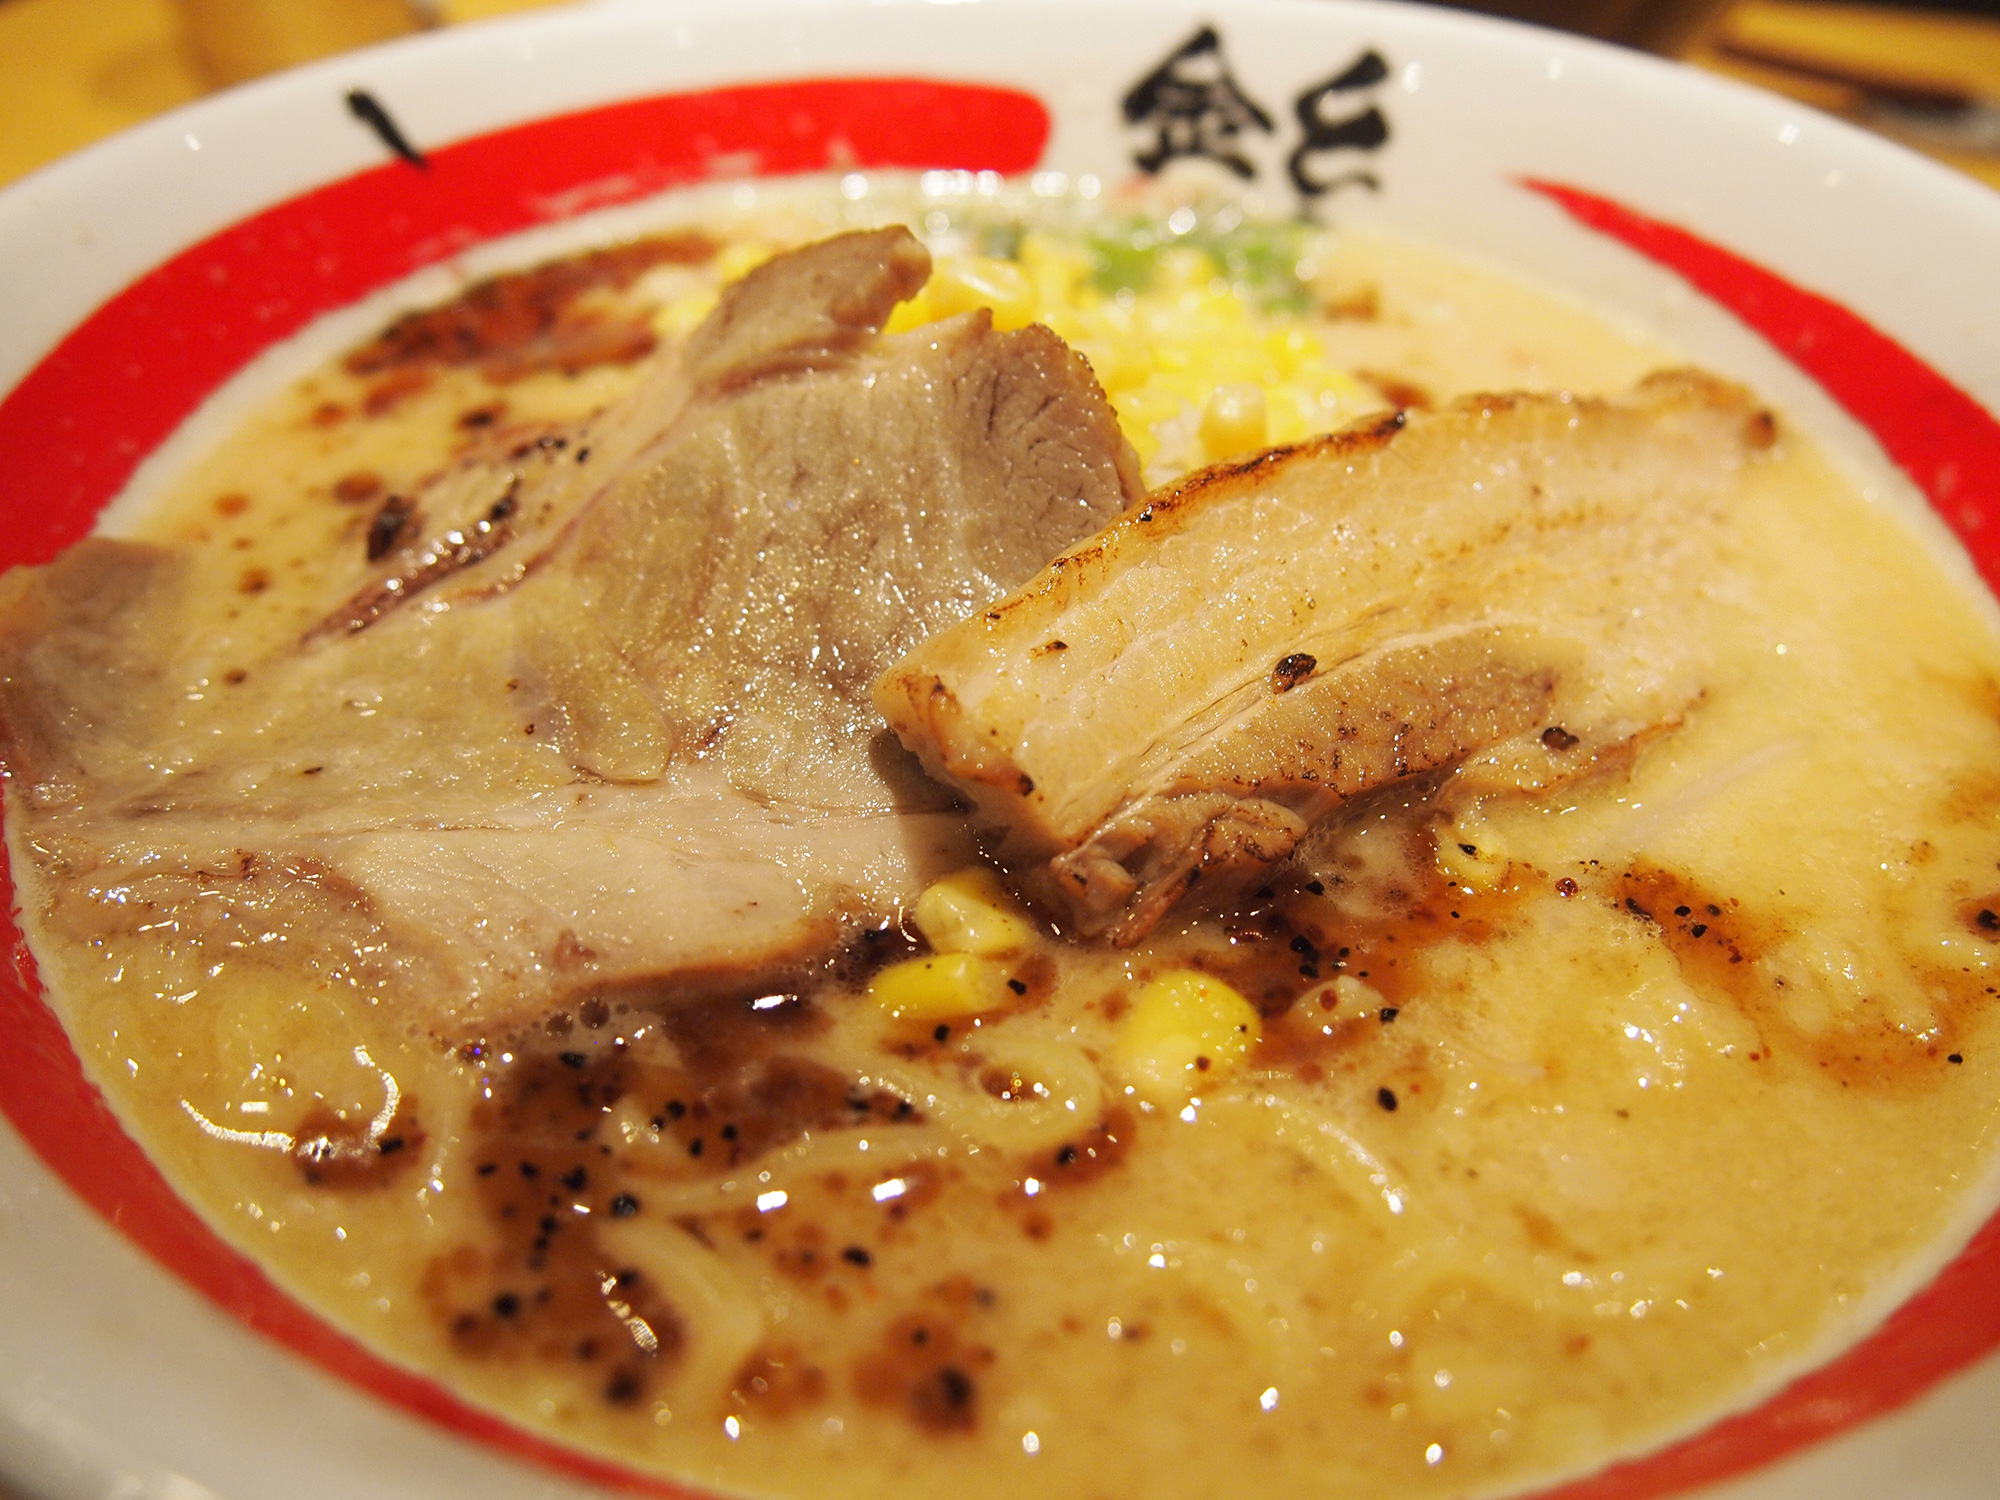 Kinton Ramen: Legit ramen finally in Montreal